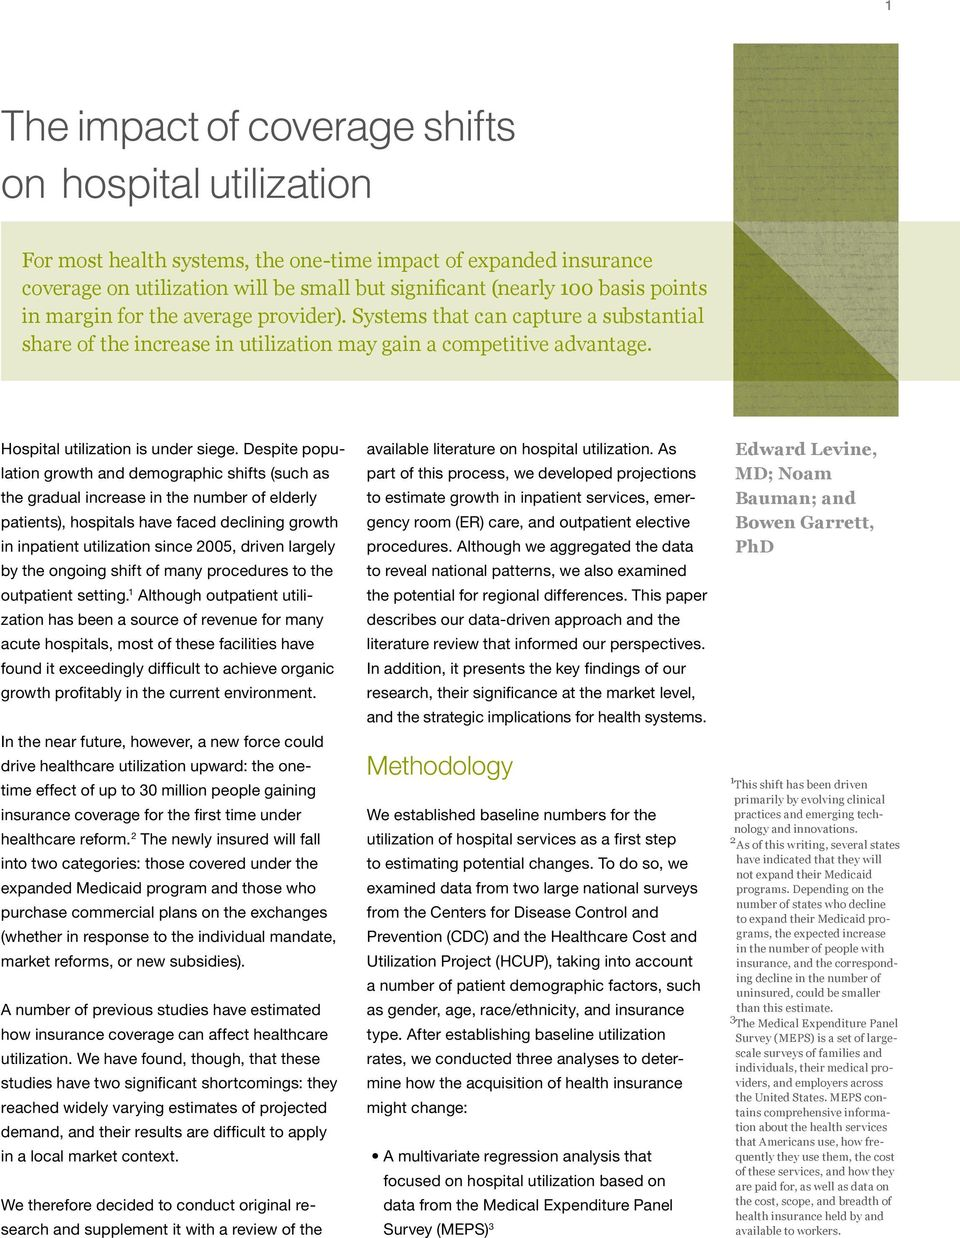 Despite population growth and demographic shifts (such as the gradual increase in the number of elderly patients), hospitals have faced declining growth in inpatient utilization since 2005, driven